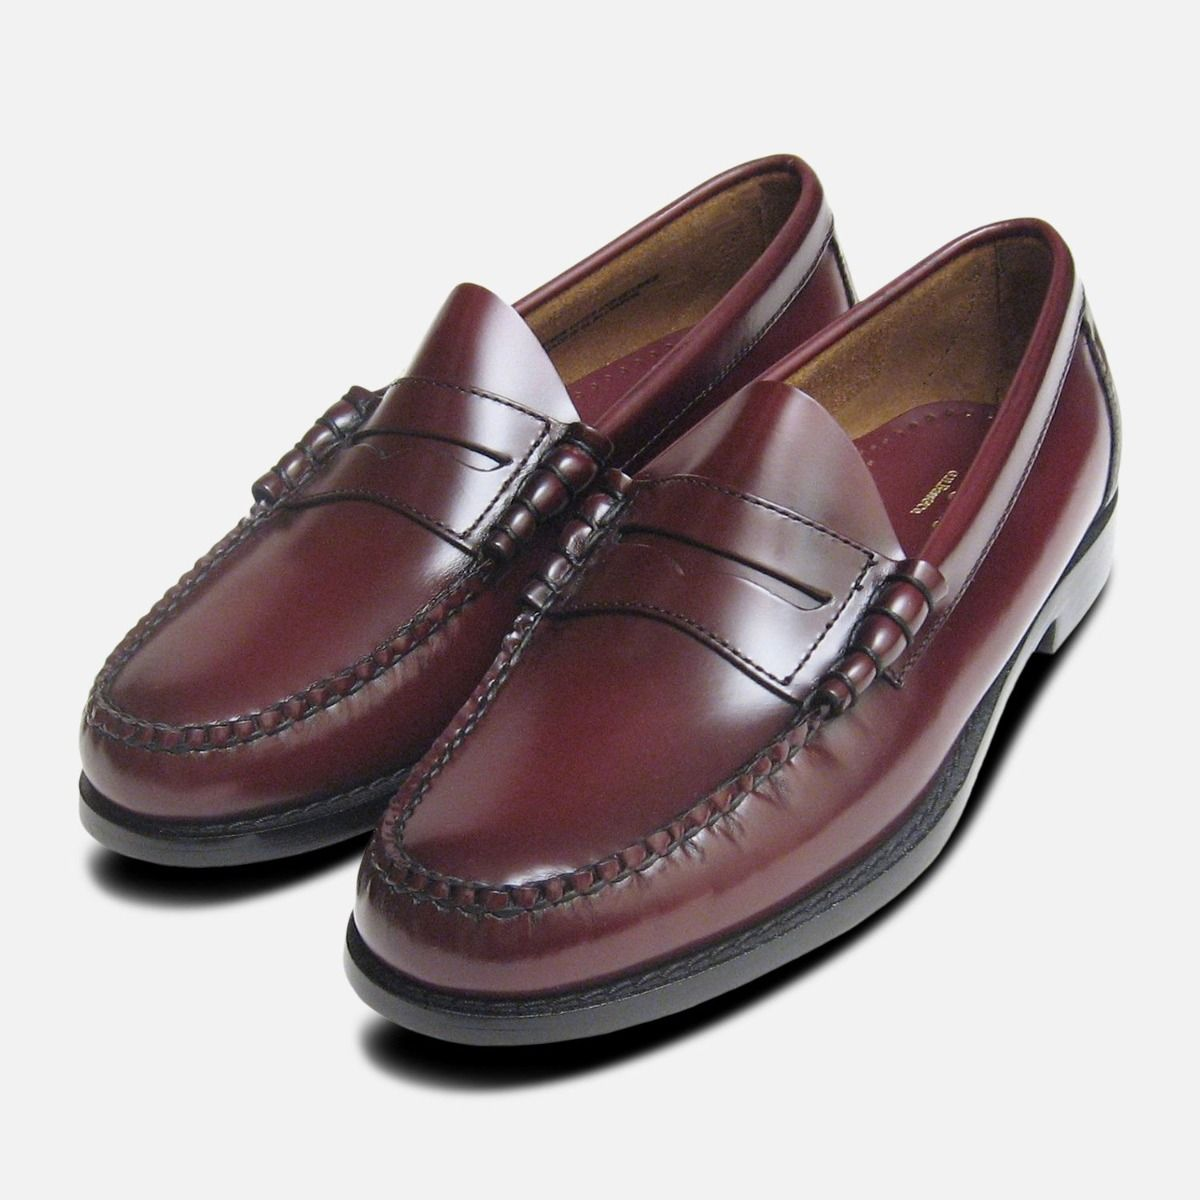 1779cf053d4 Classic Mens Burgundy Wine Larson Penny Loafers GH Bass Weejuns